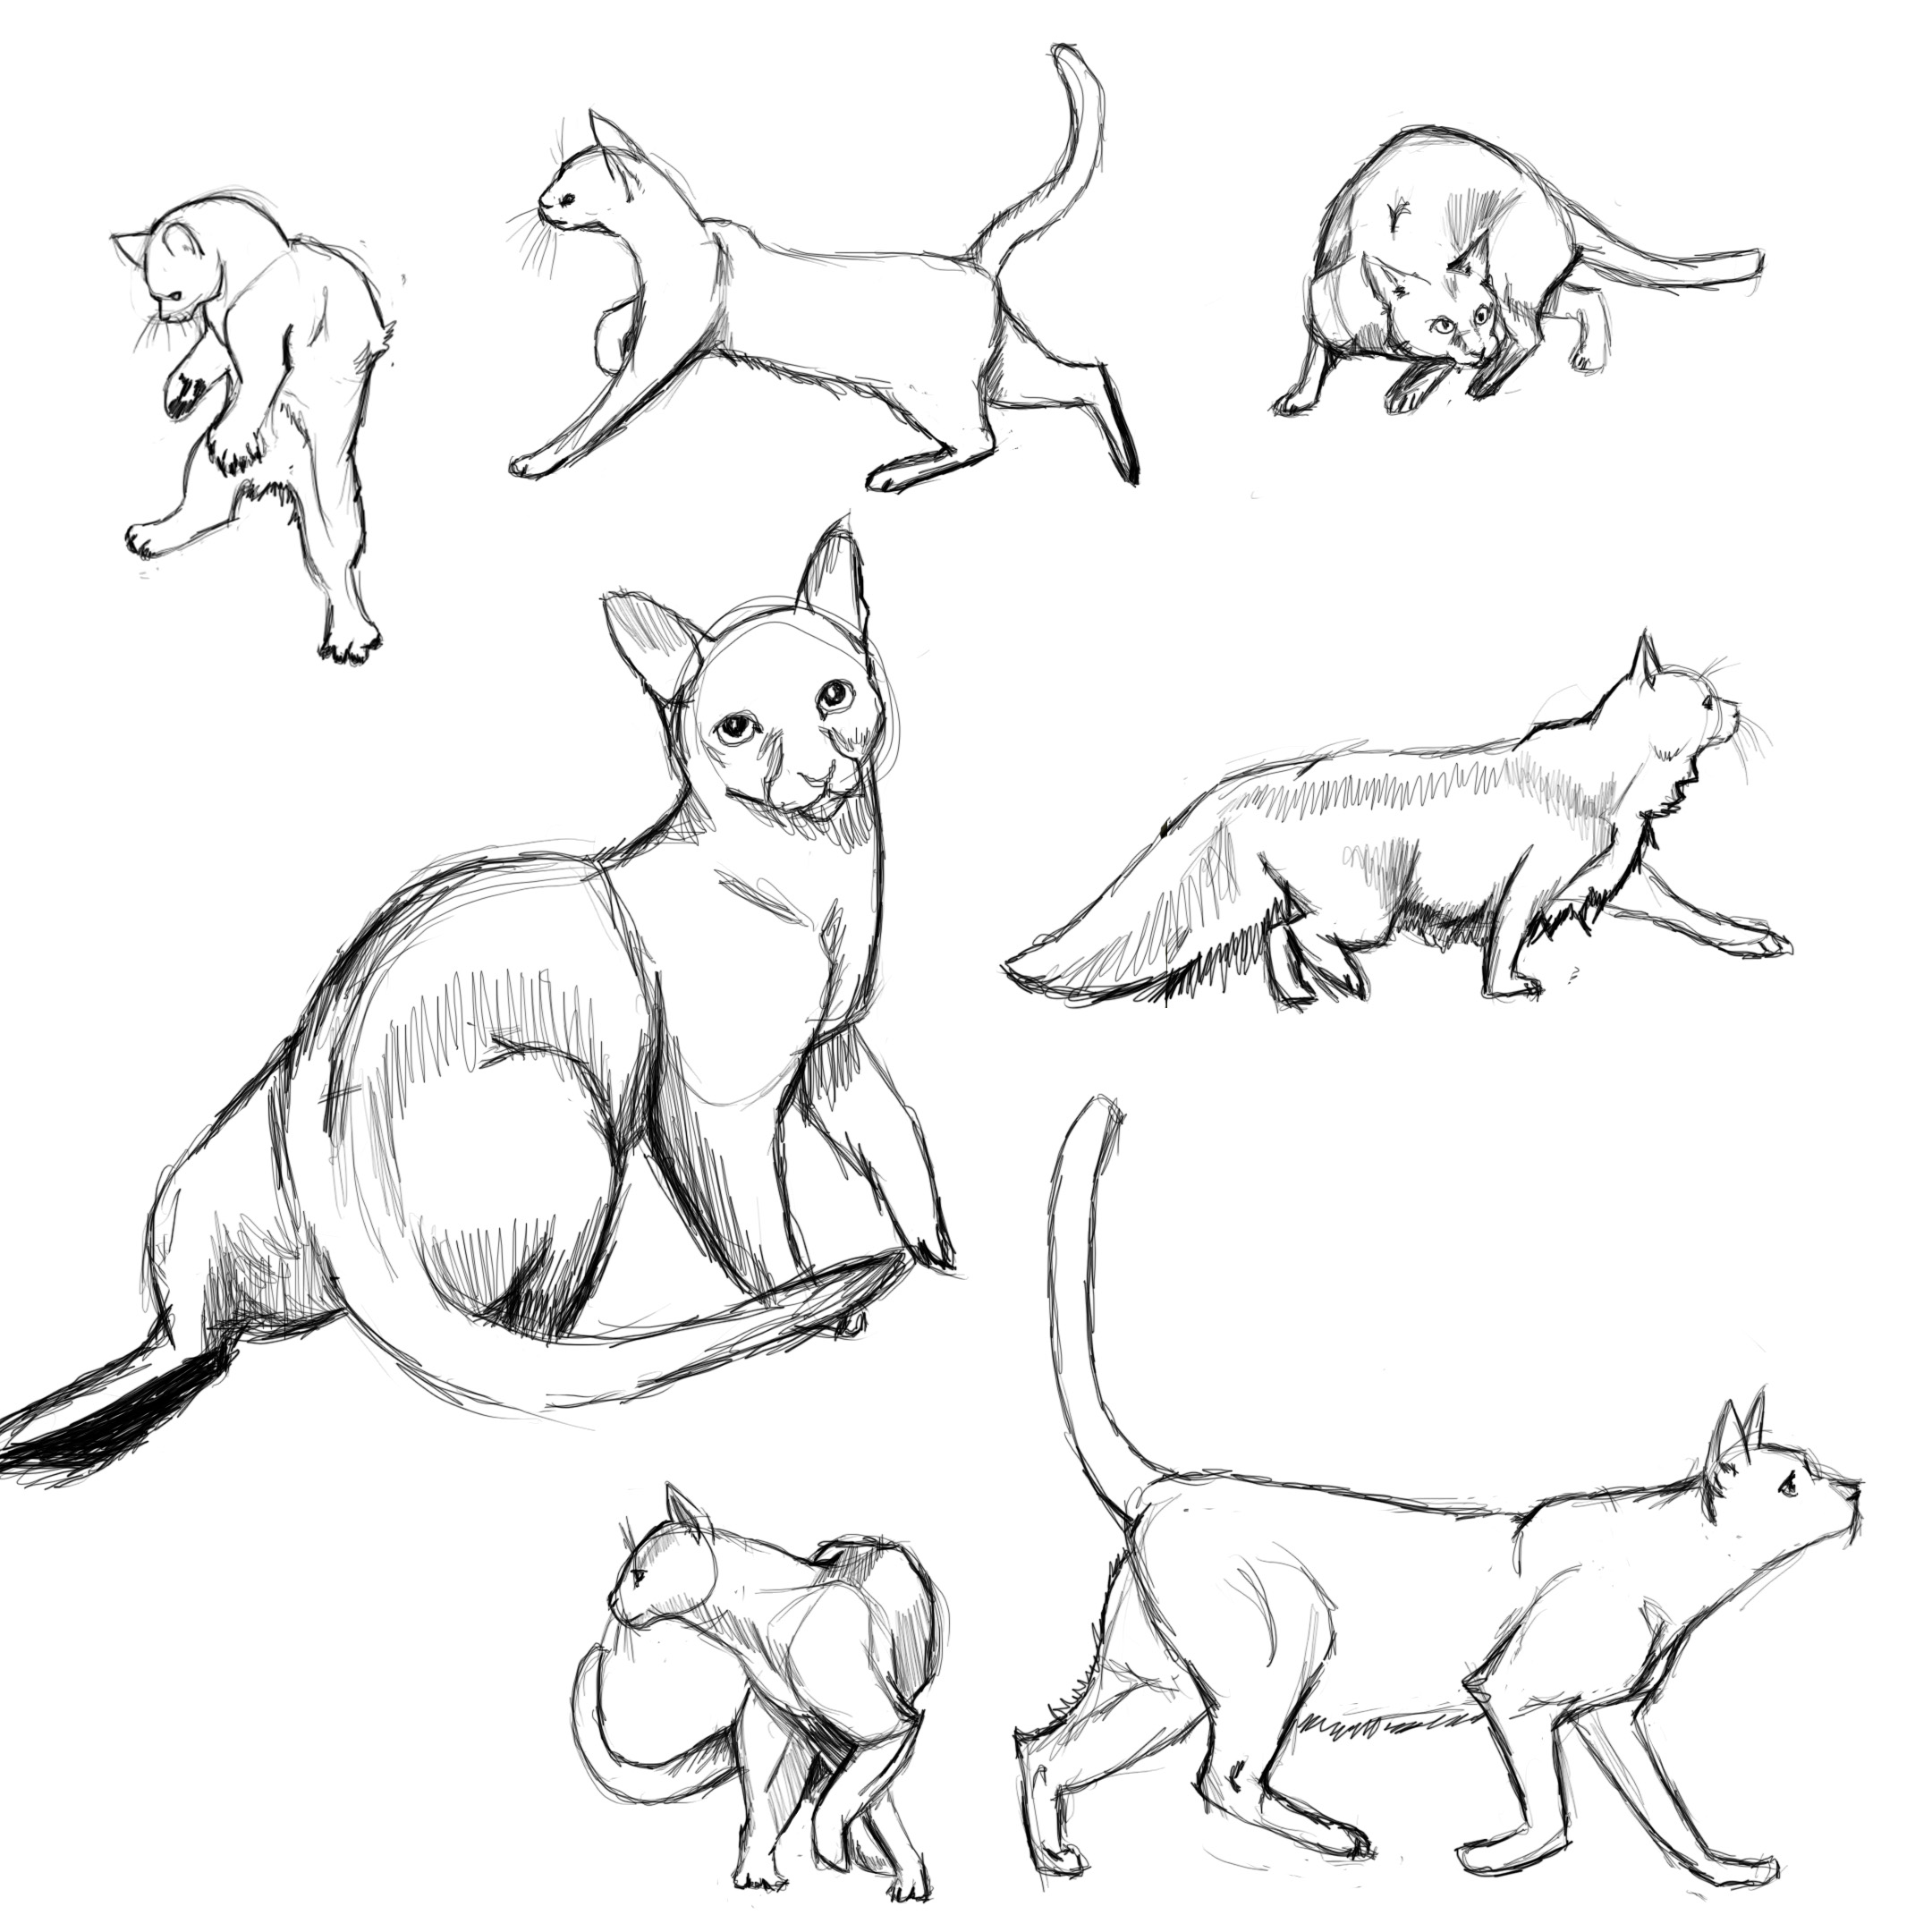 2160x2160 Cat Poses Study1 By Flamefoxe